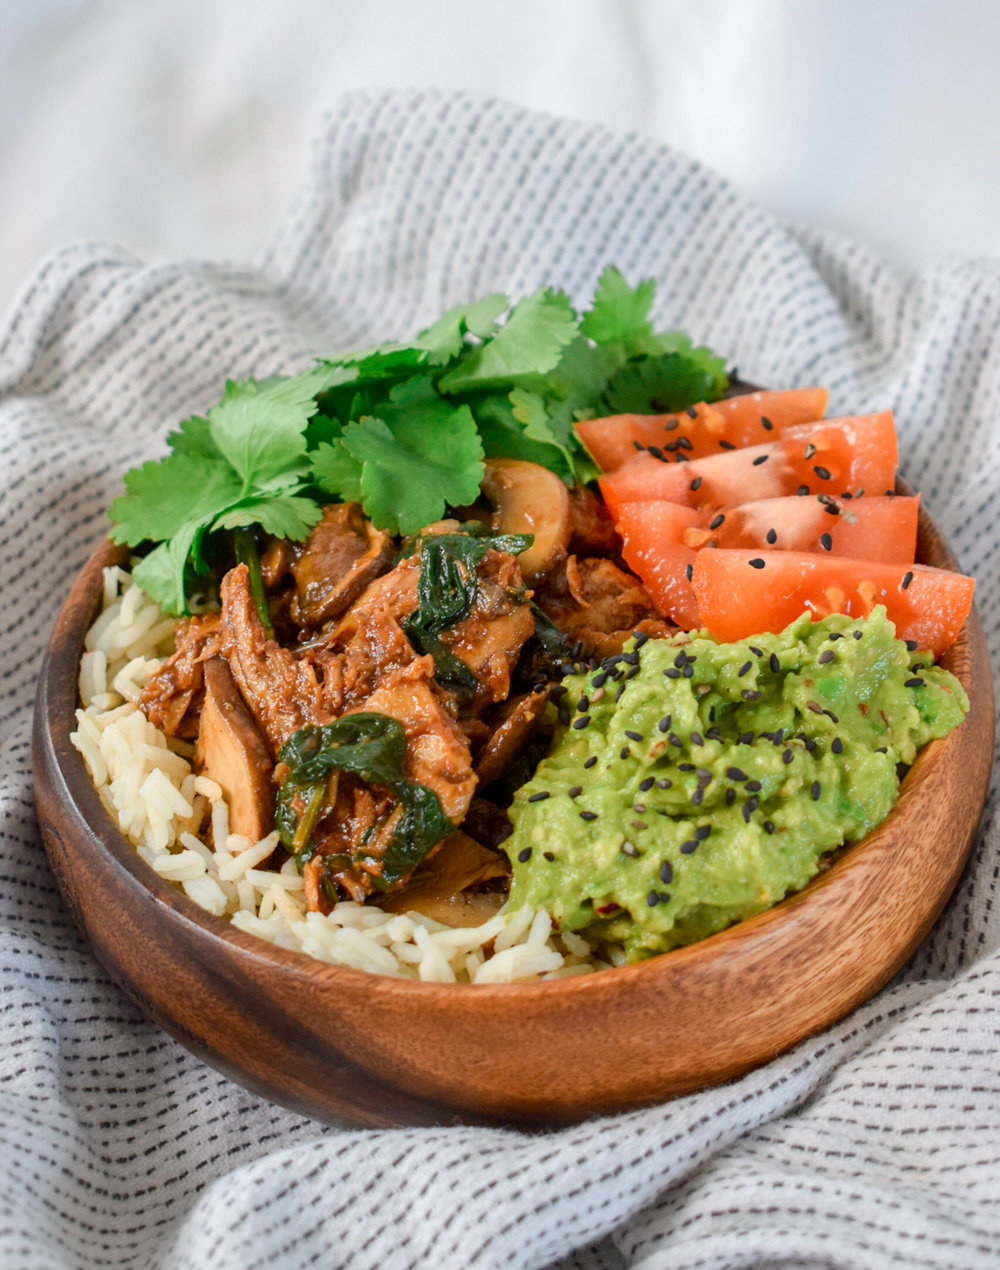 Vegan Buddha Bowl with Pulled Oumph! by Ally The Earthling